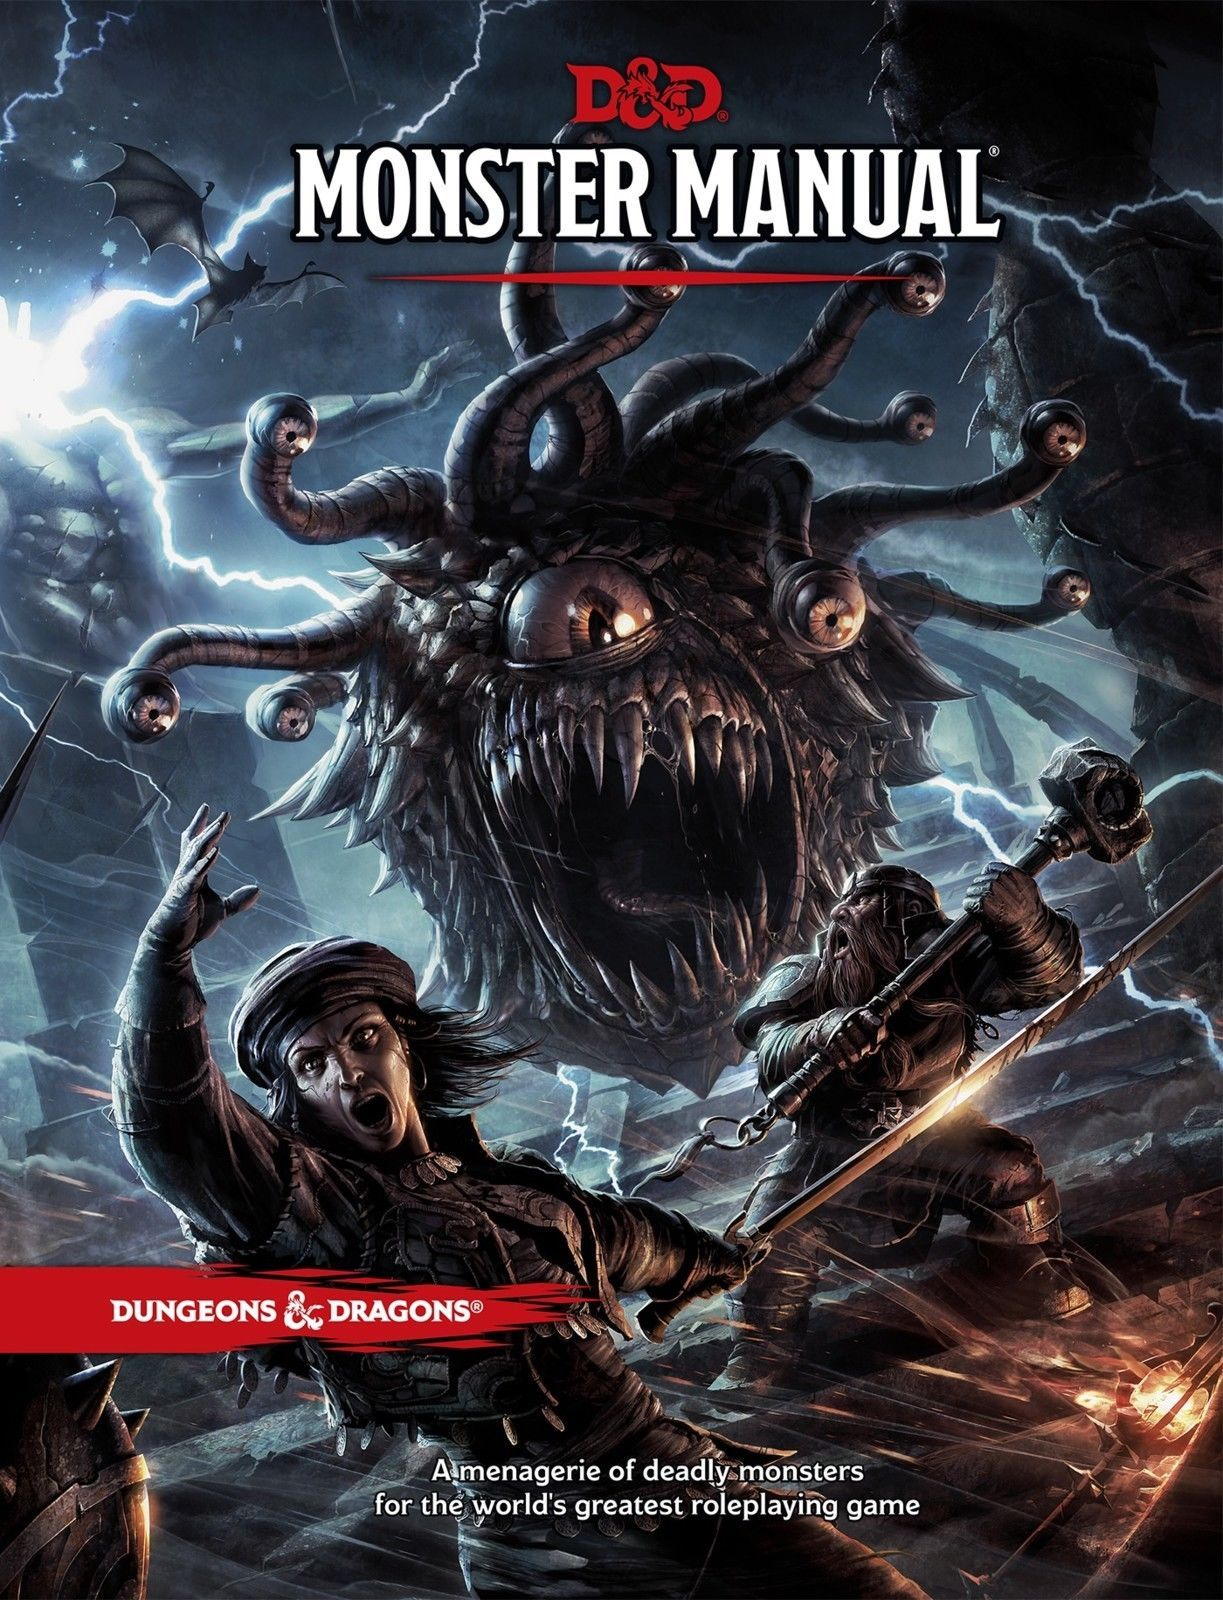 Monster Manuals 158711: 1-Pc Wizards Of The Coast Dungeons Dragons: Monster  Manual (Hardcover) -> BUY IT NOW ONLY: $47.56 on #eBay #monster #manuals ...